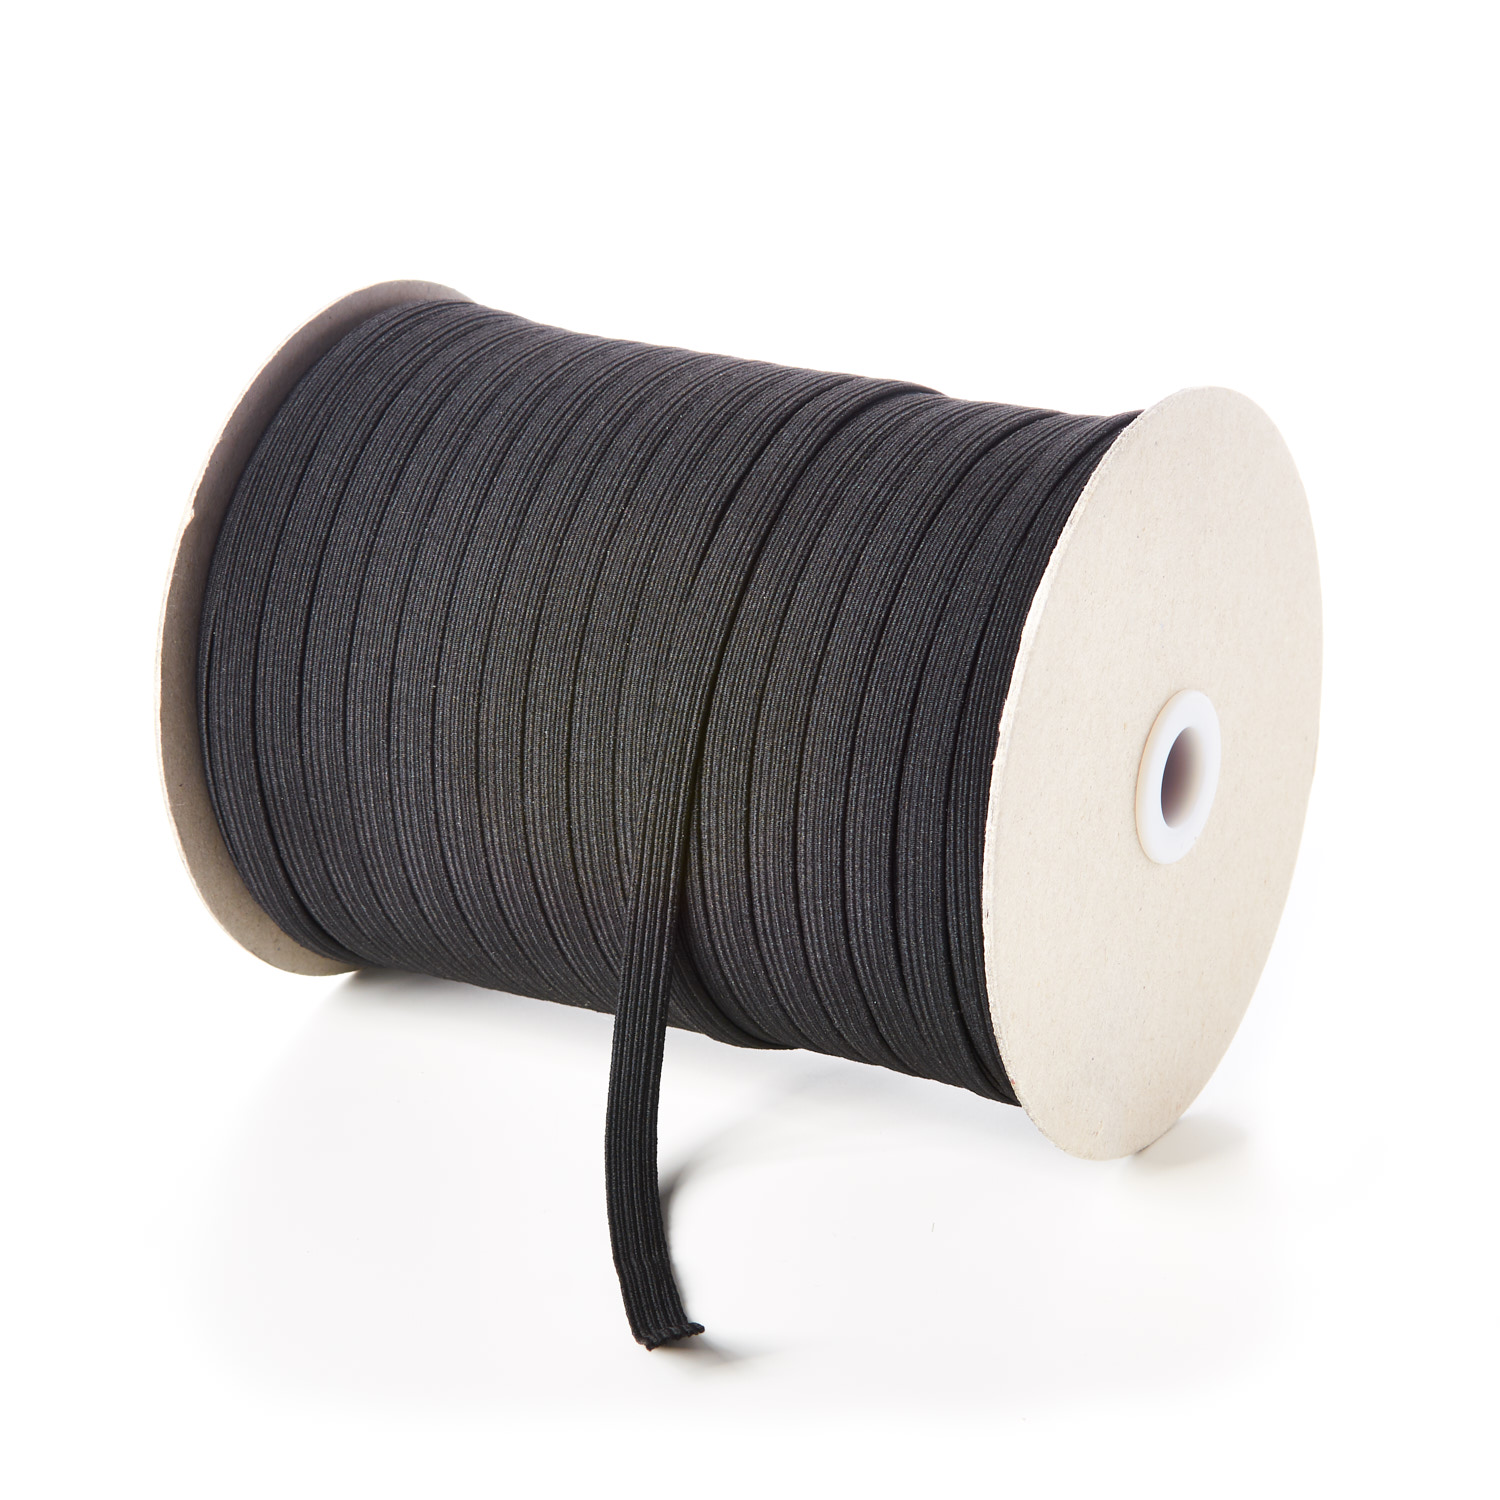 8mm 10 Cord Flat Elastic Braided Trimmings Crafts Sewing